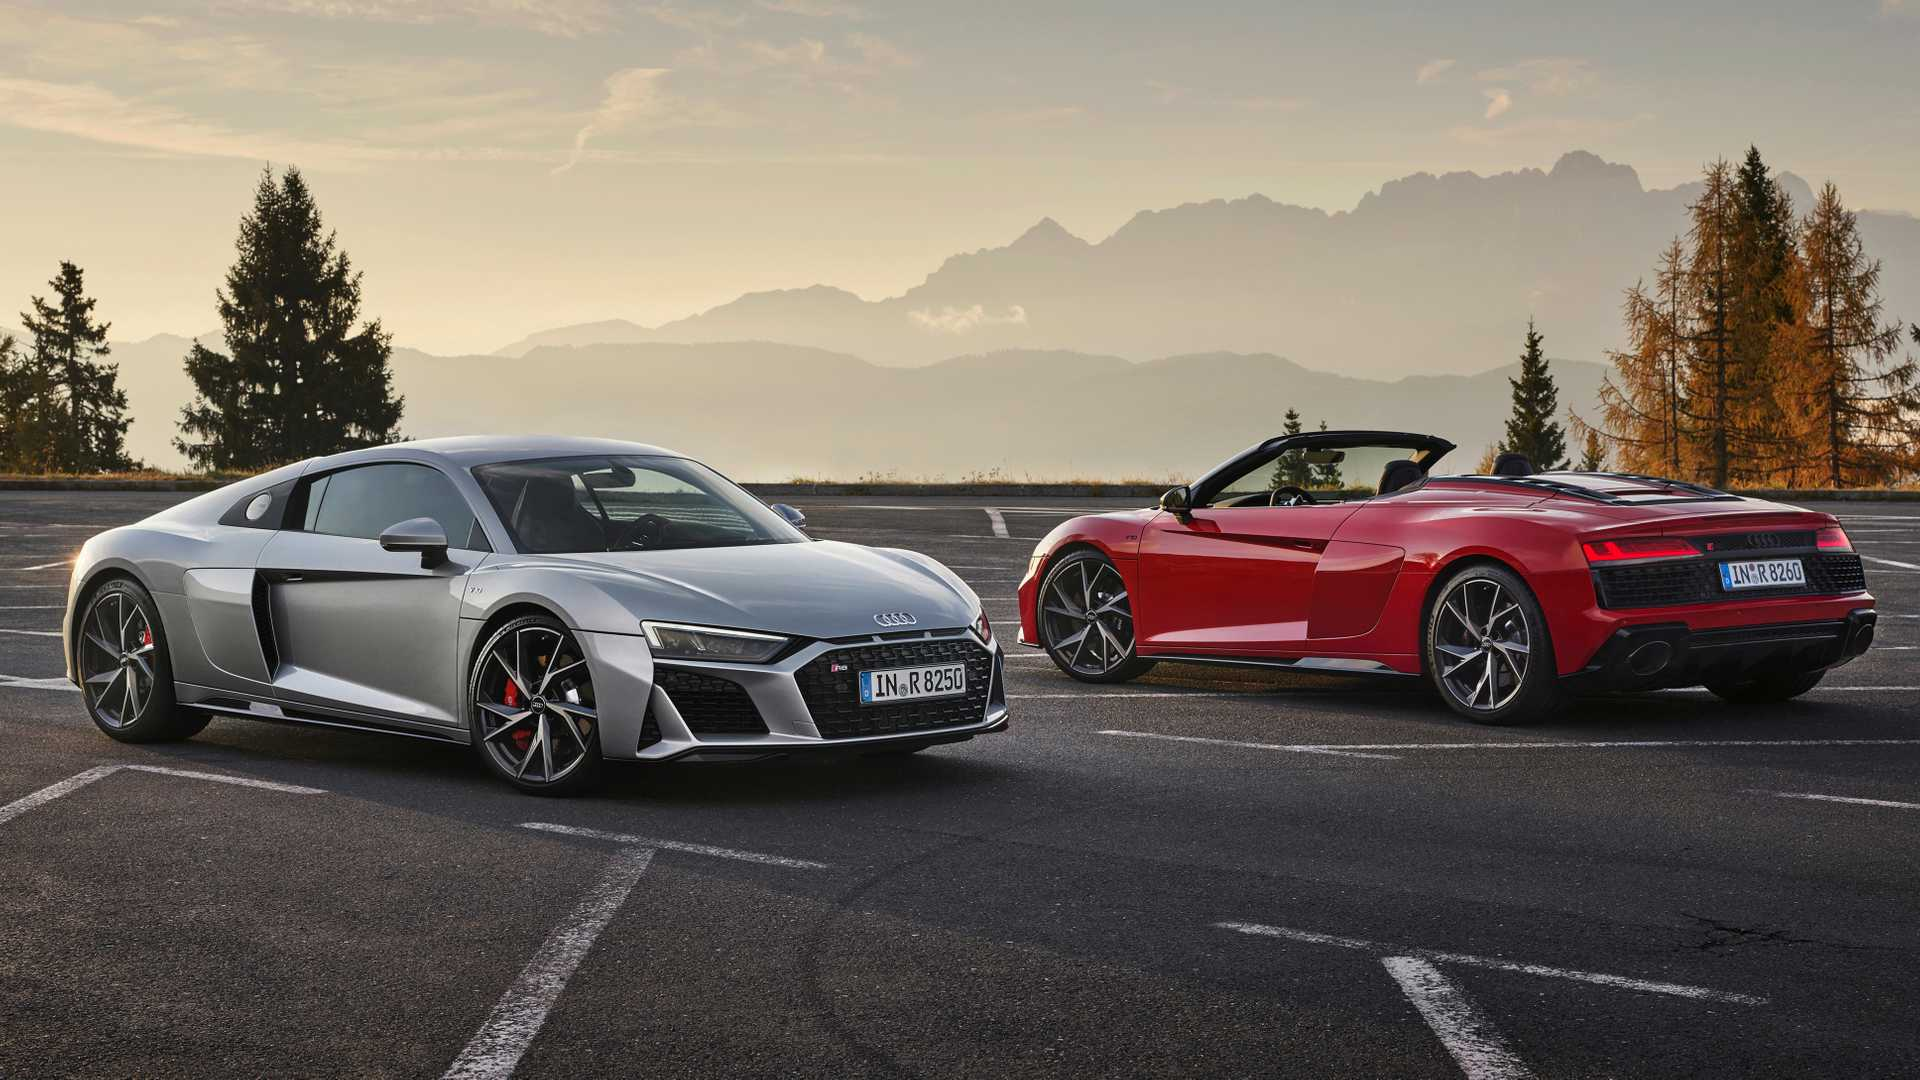 2020 Audi R8 V10 Spyder Exterior and Interior